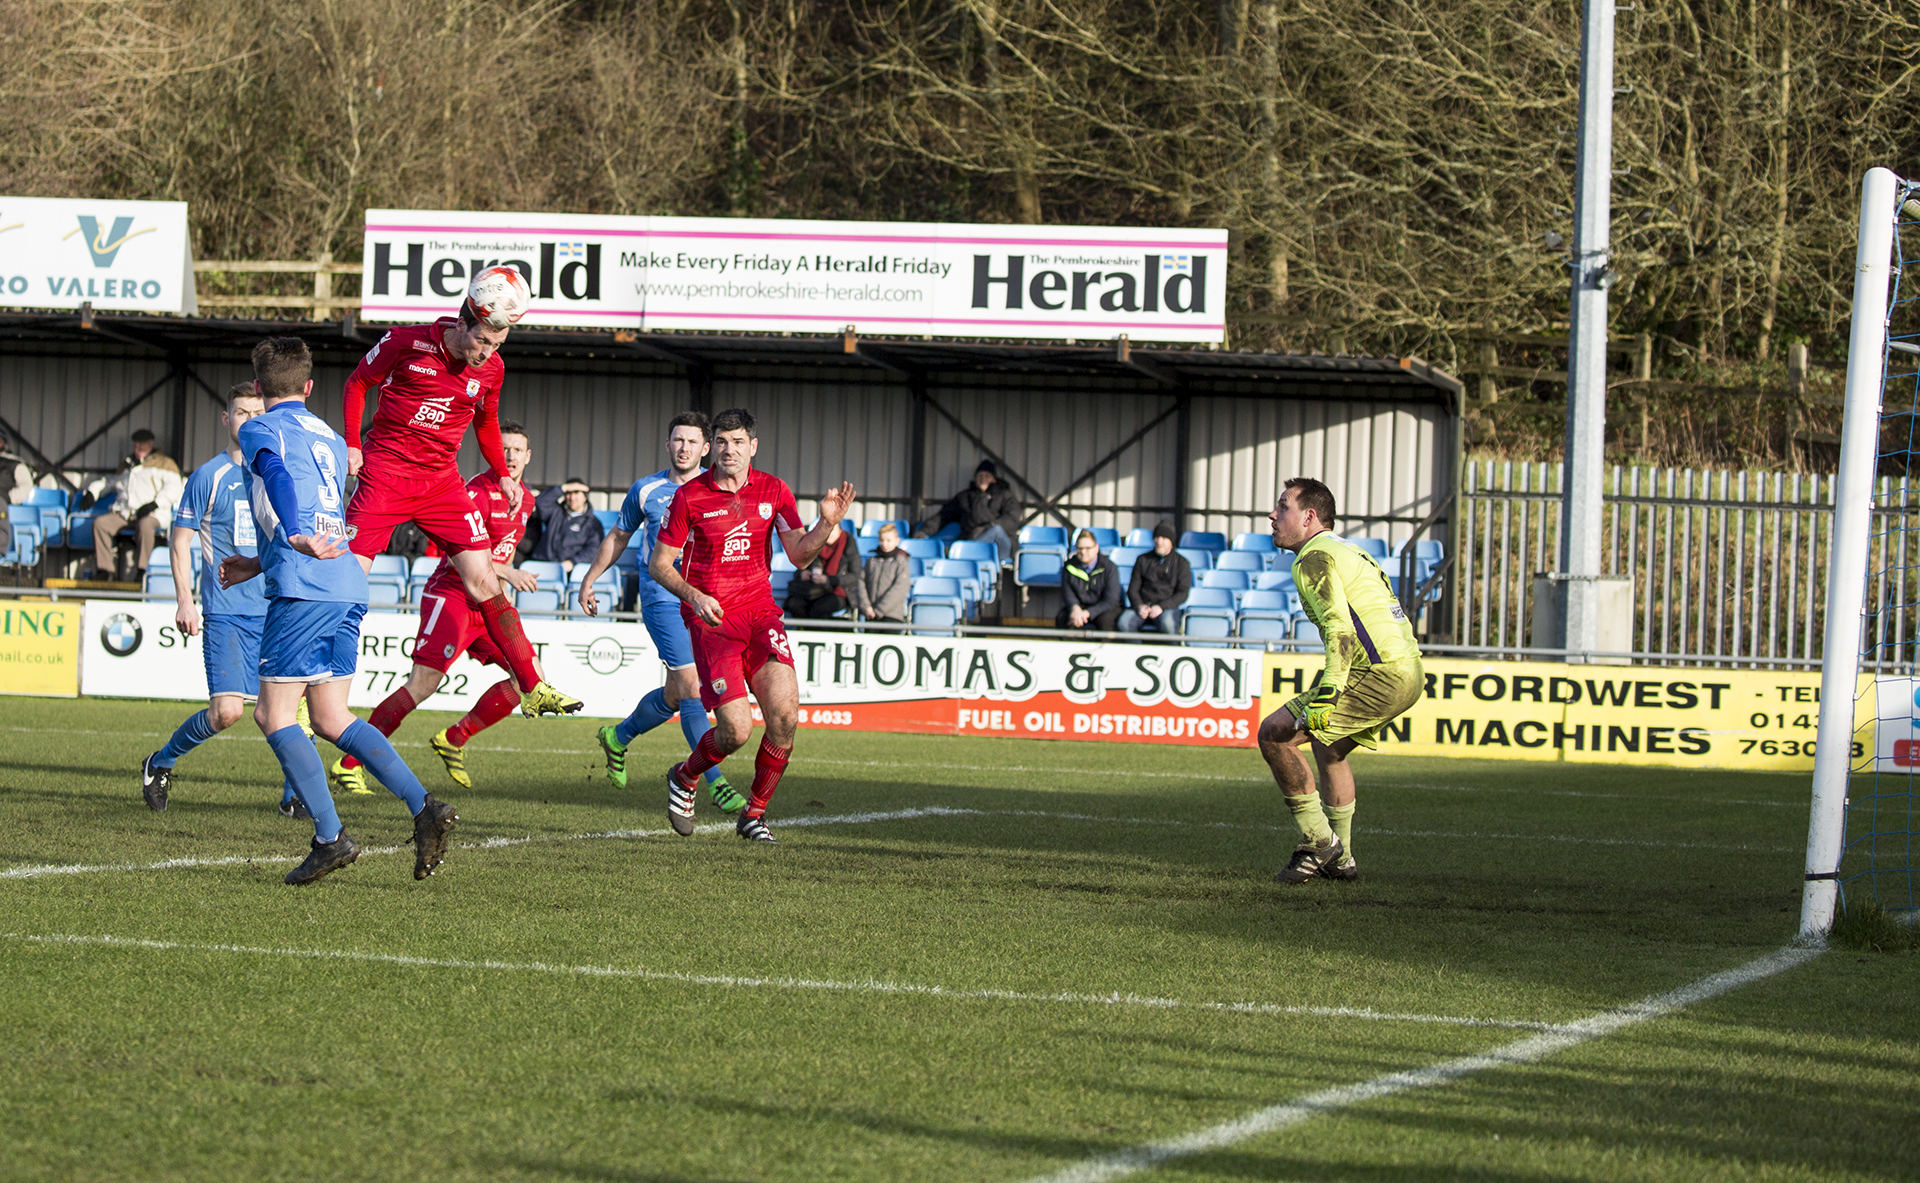 Matty Williams nods home in the 13th minute - © NCM Media